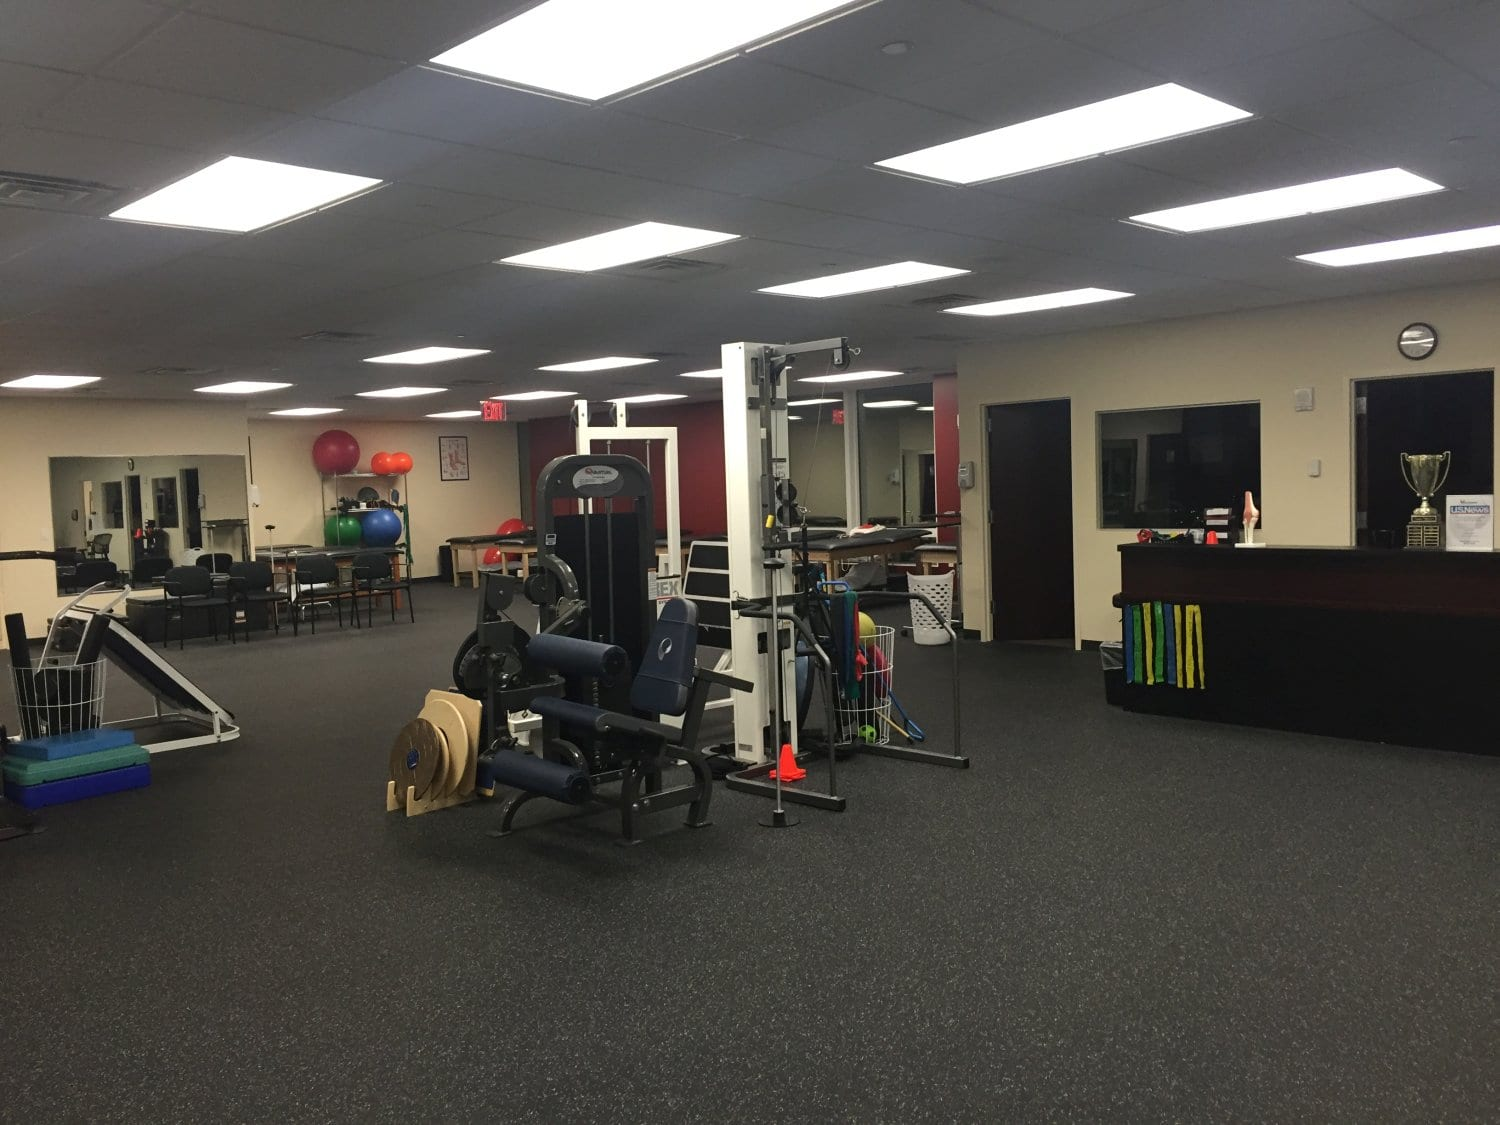 An image of the inside of our physical therapy clinic in Bronx, New York.